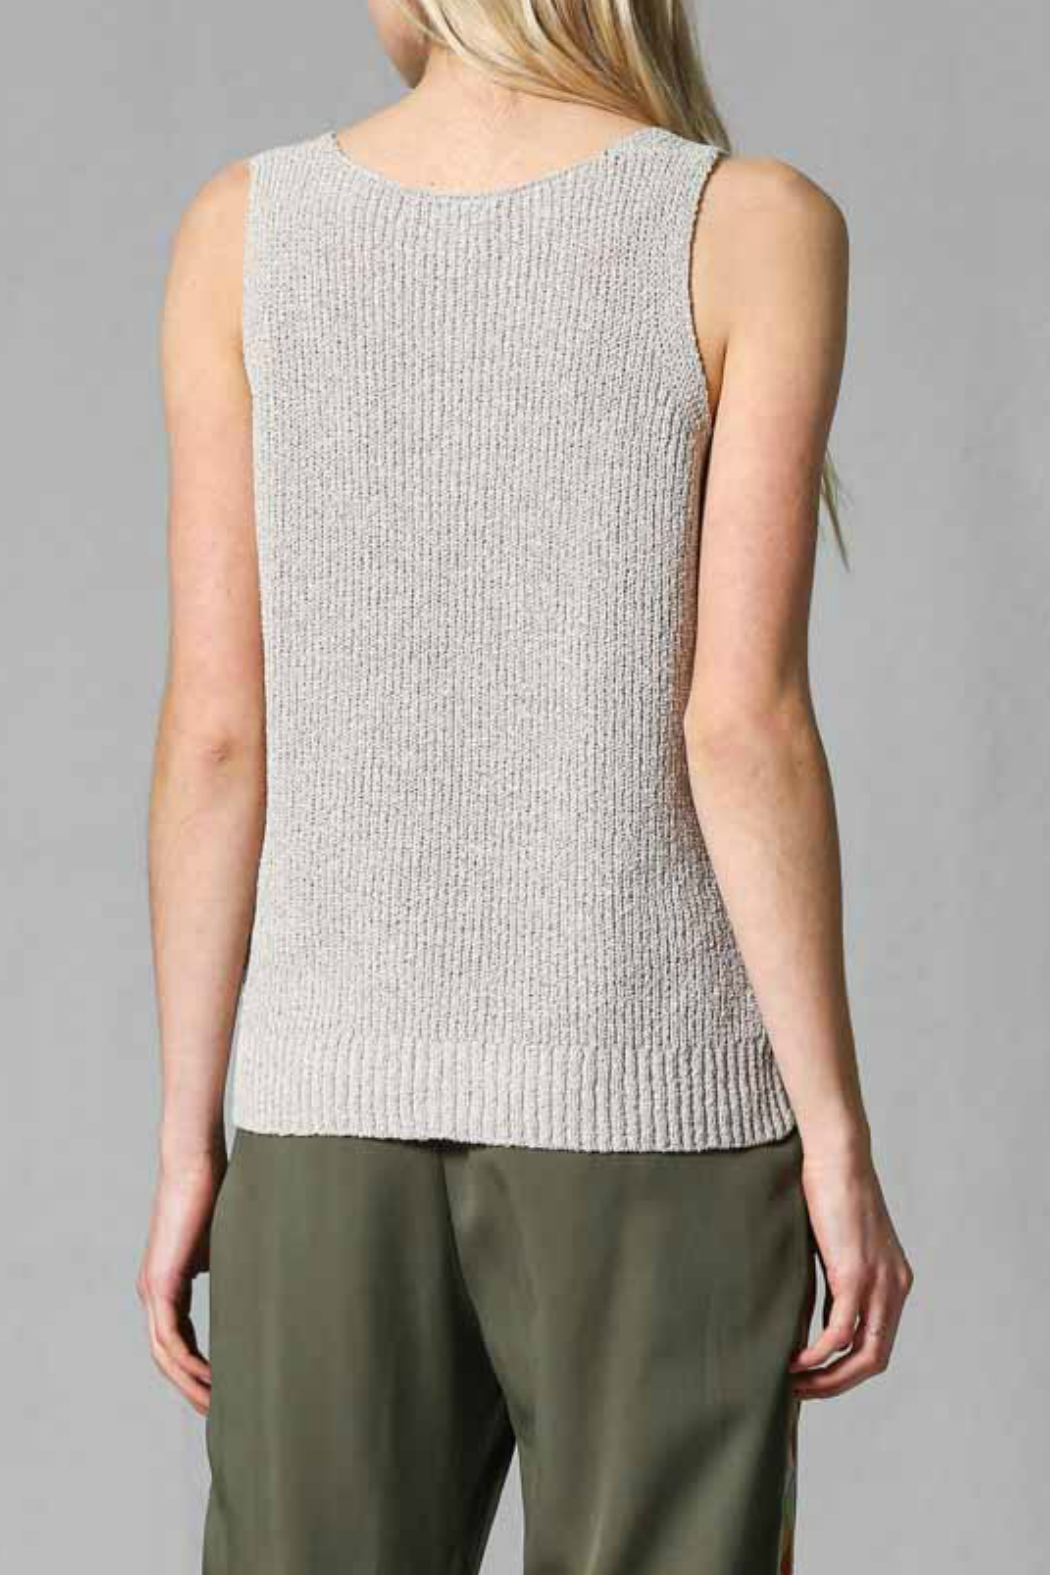 FATE by LFD Front twisted sweater tan top - Front Full Image